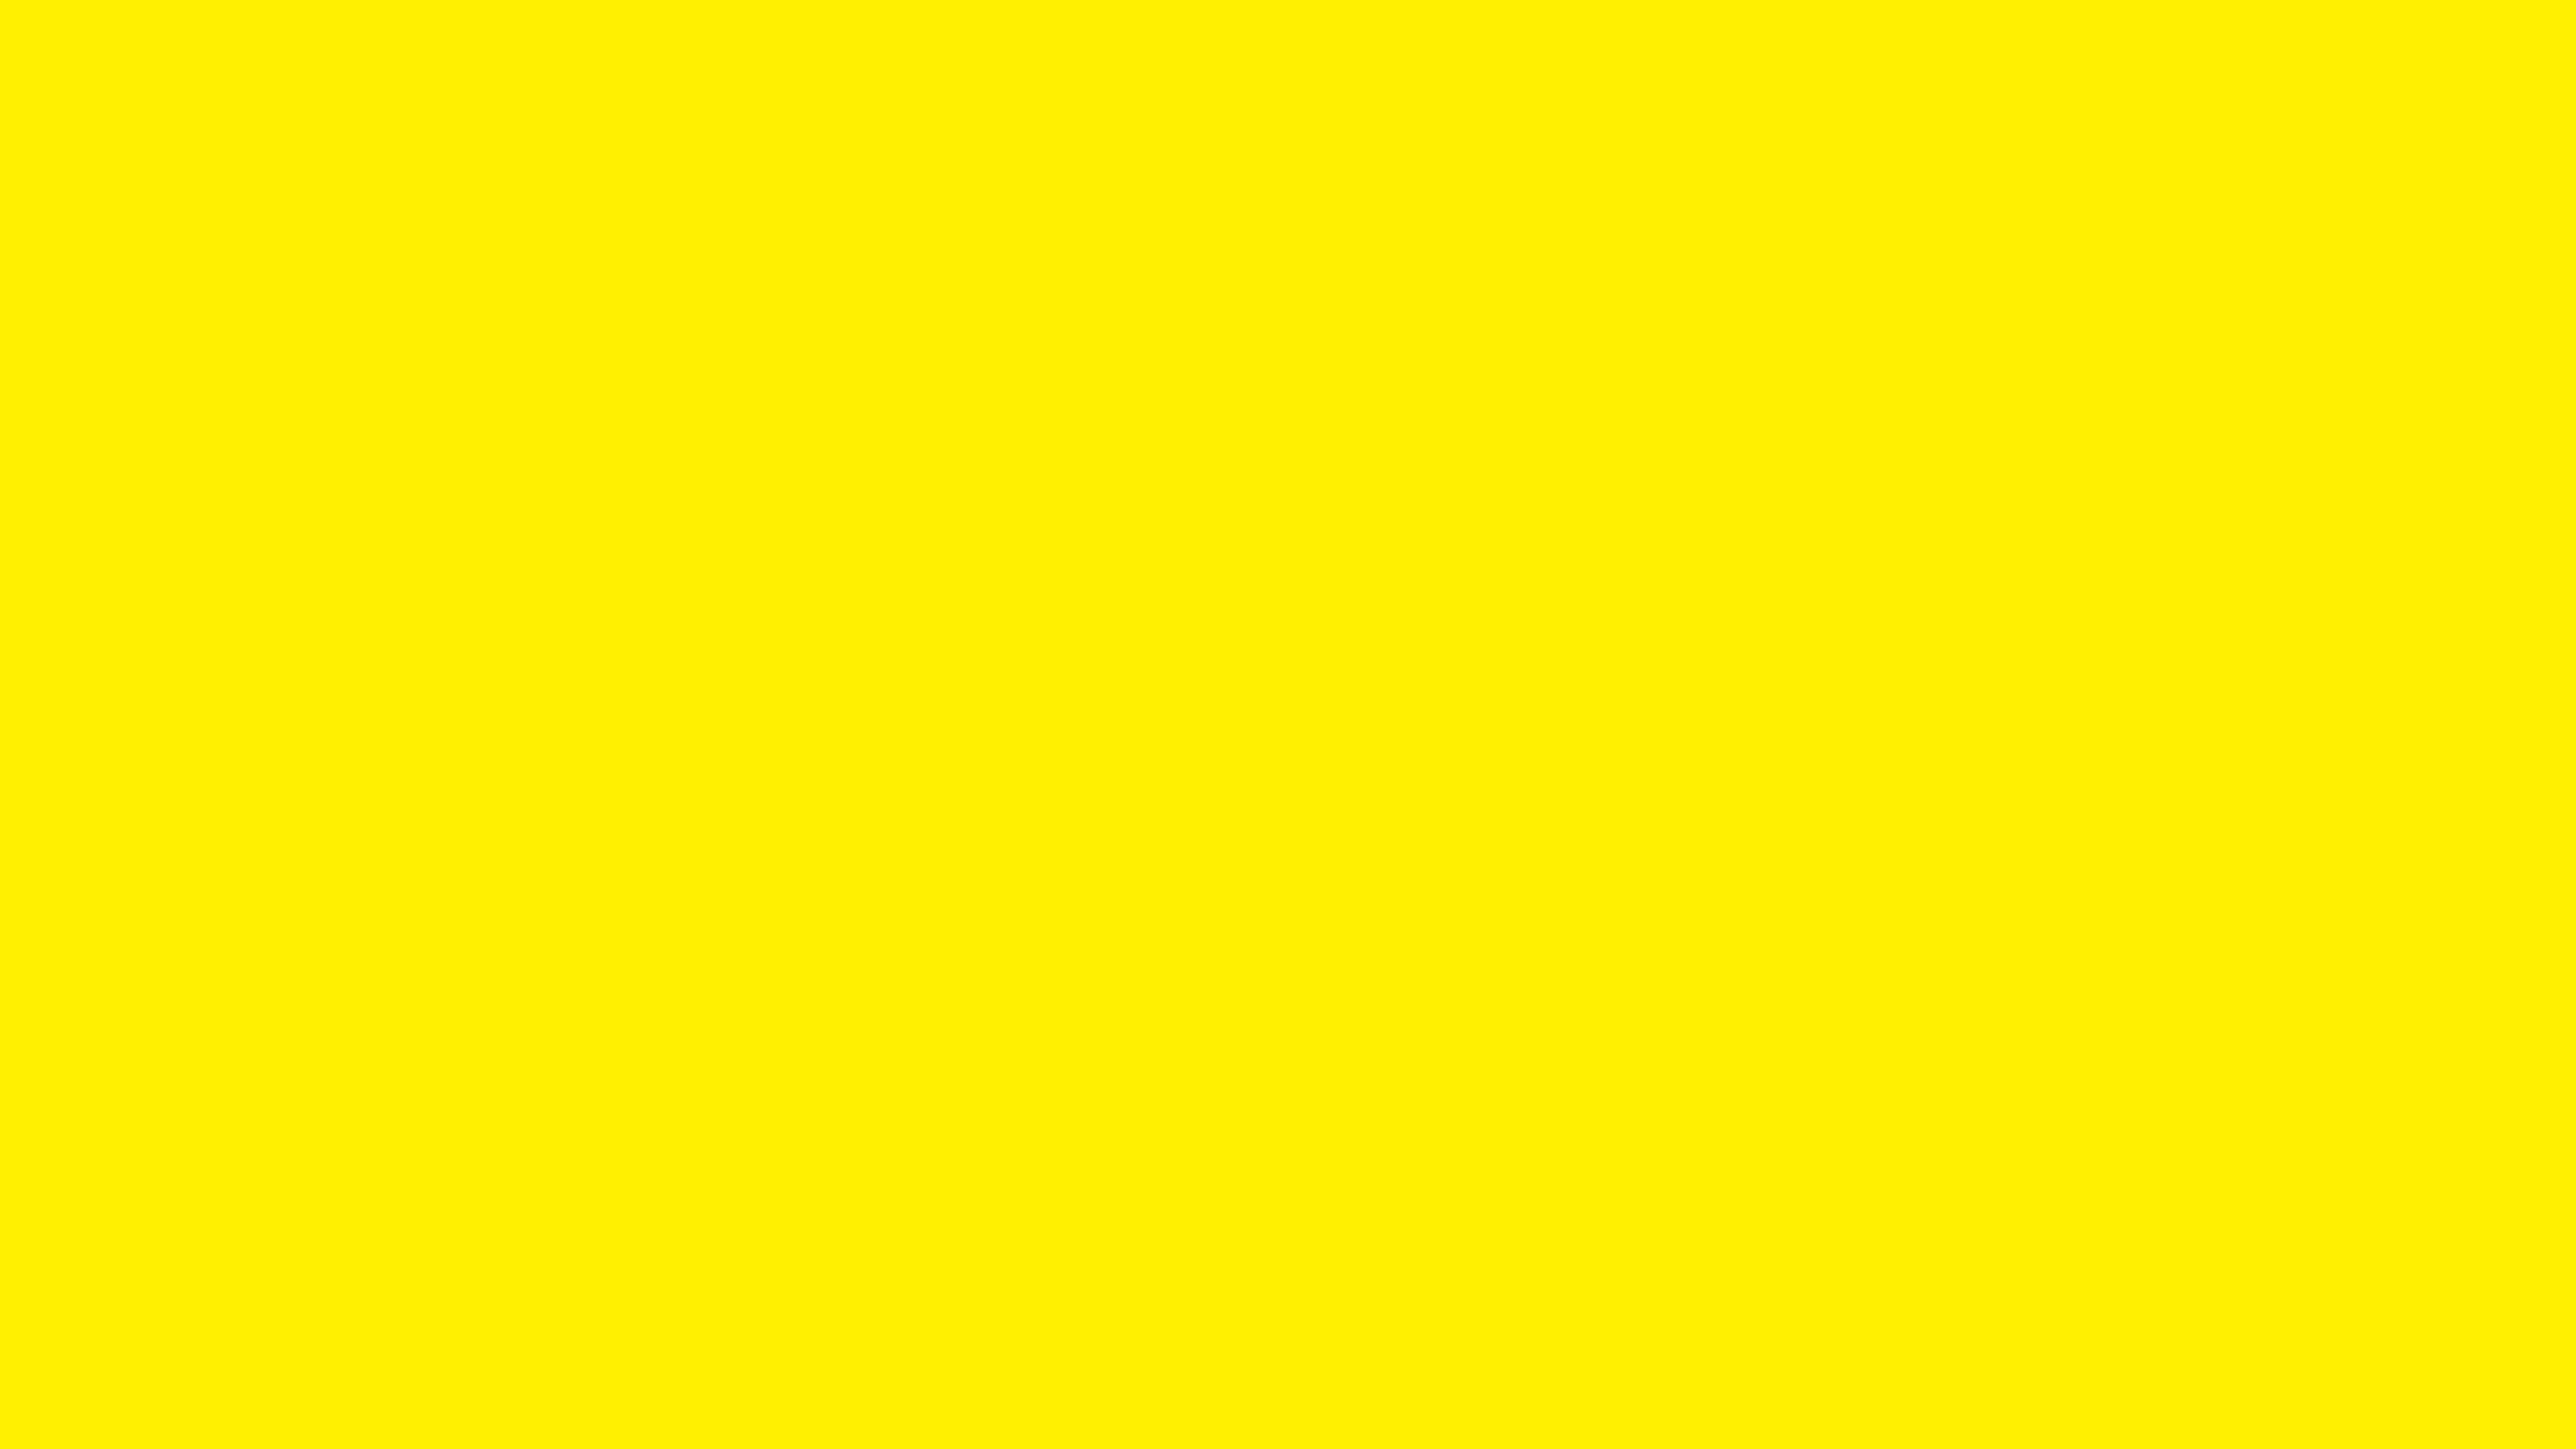 4096x2304 Yellow Process Solid Color Background